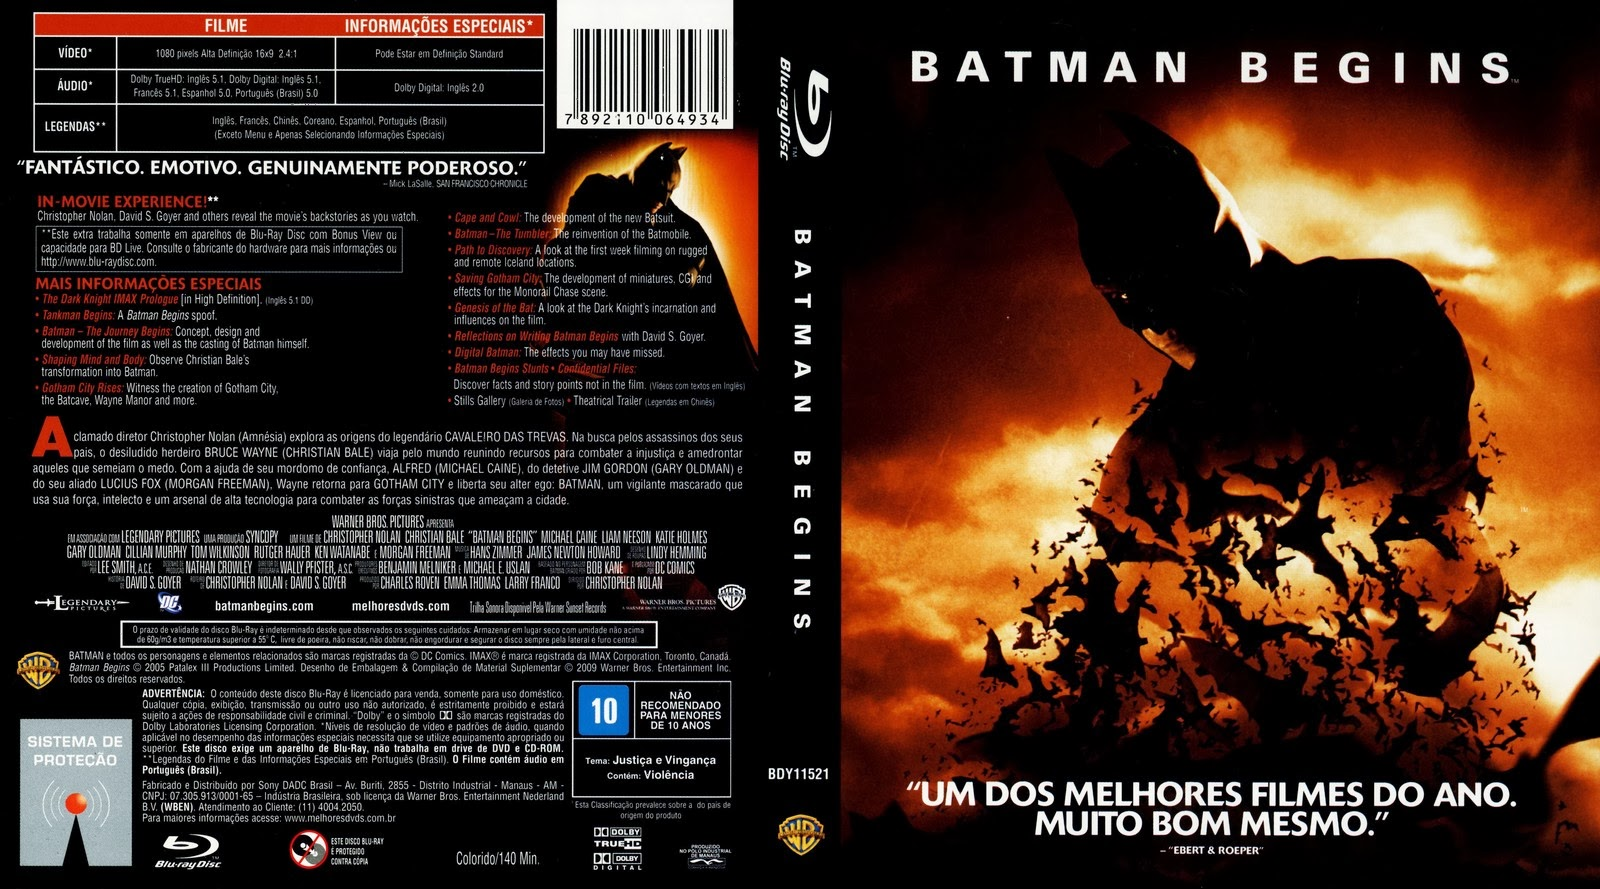 0799º - BATMAN BEGINS